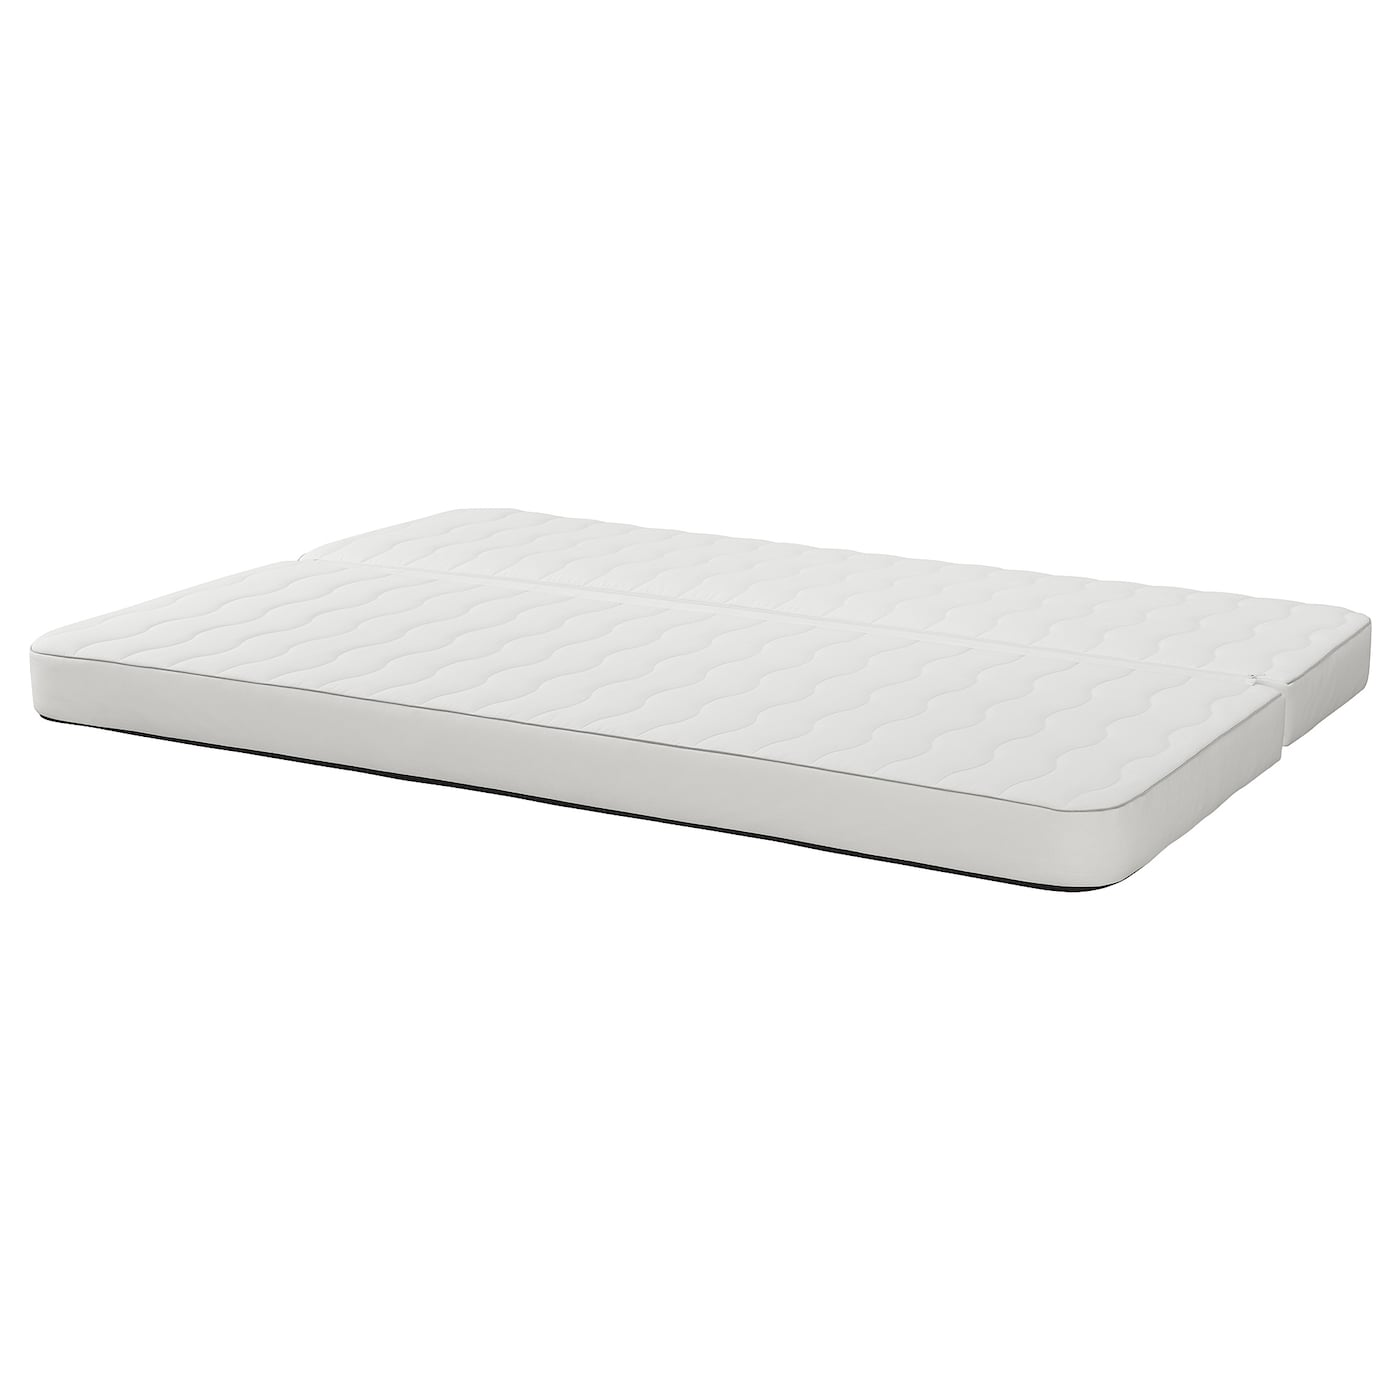 IKEA NYHAMN pocket sprung mattress